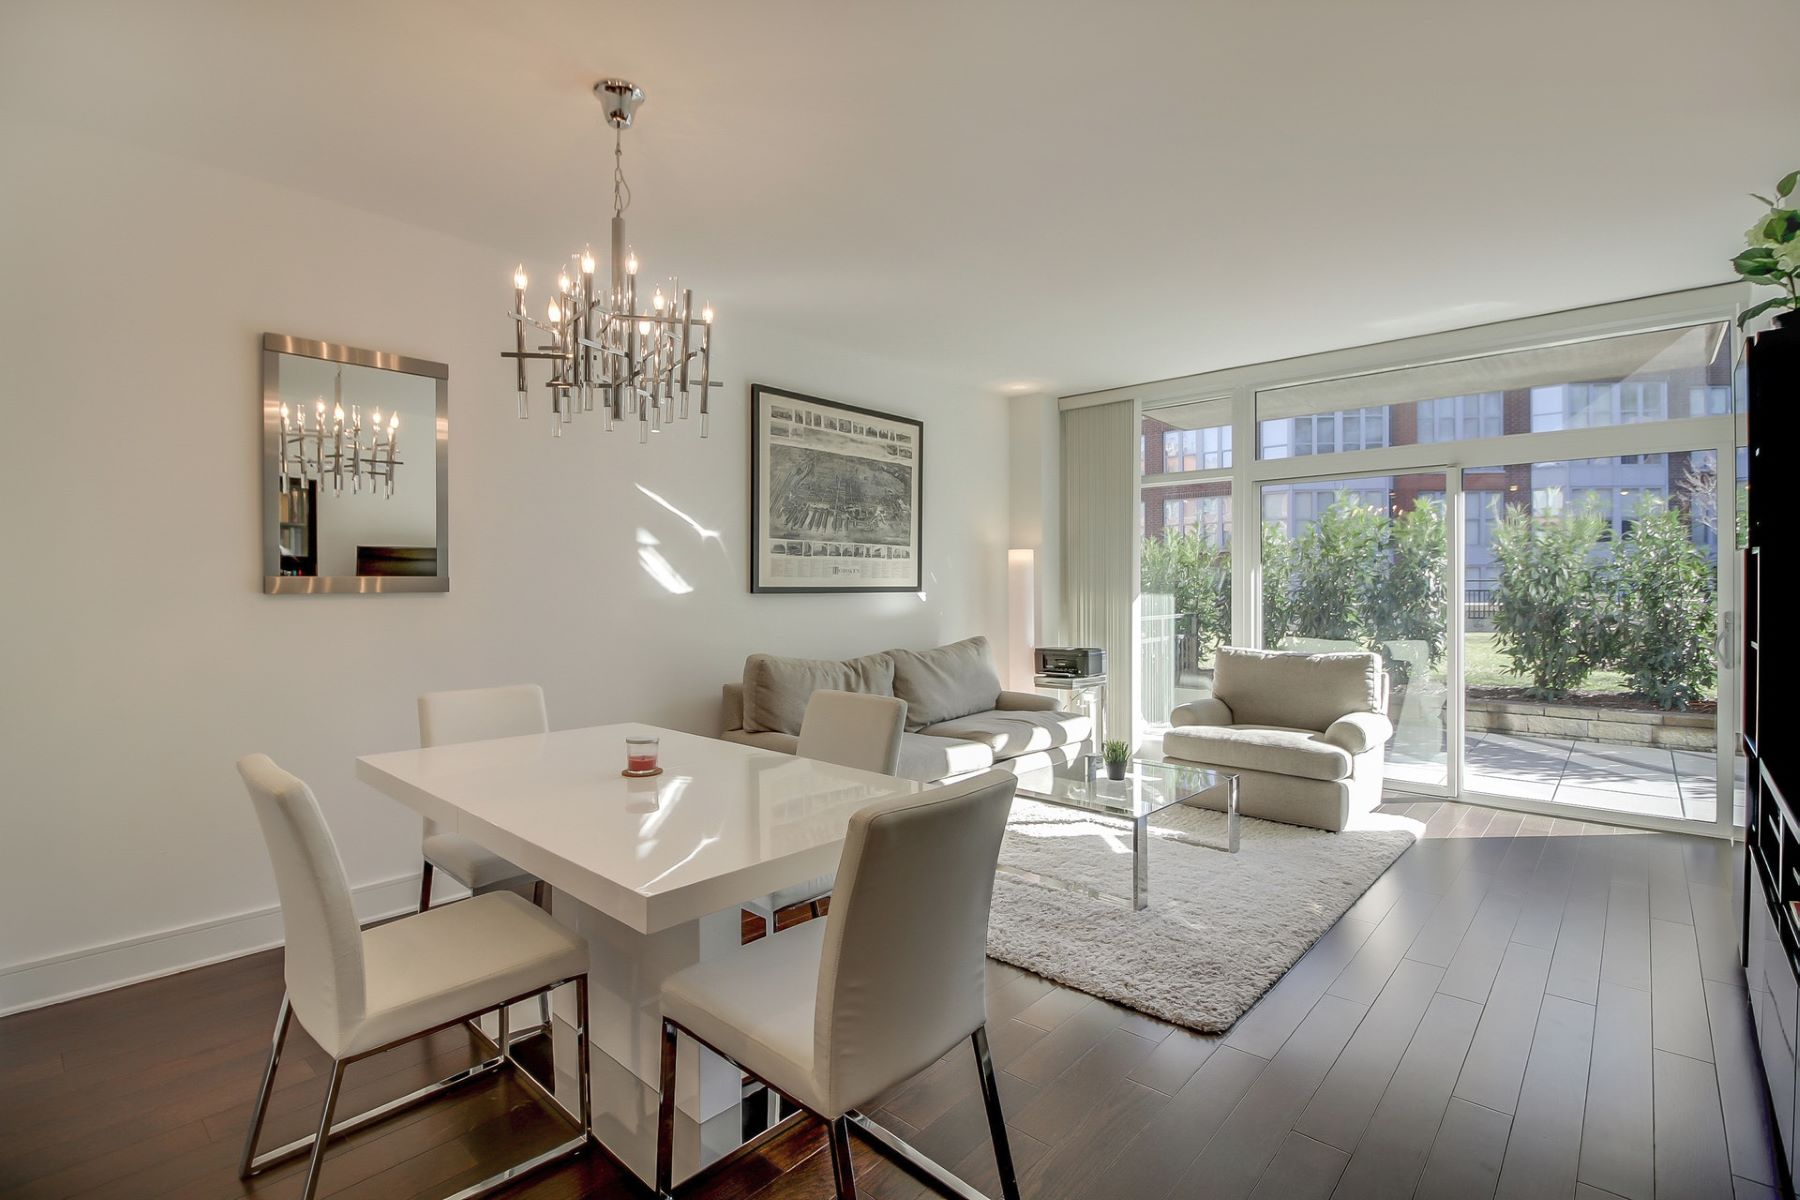 Appartement en copropriété pour l Vente à Don't miss this stunning 1 Bed / 1 Bath located in the luxurious Maxwell Place 1100 Maxwell Lane #418, Hoboken, New Jersey 07030 États-Unis